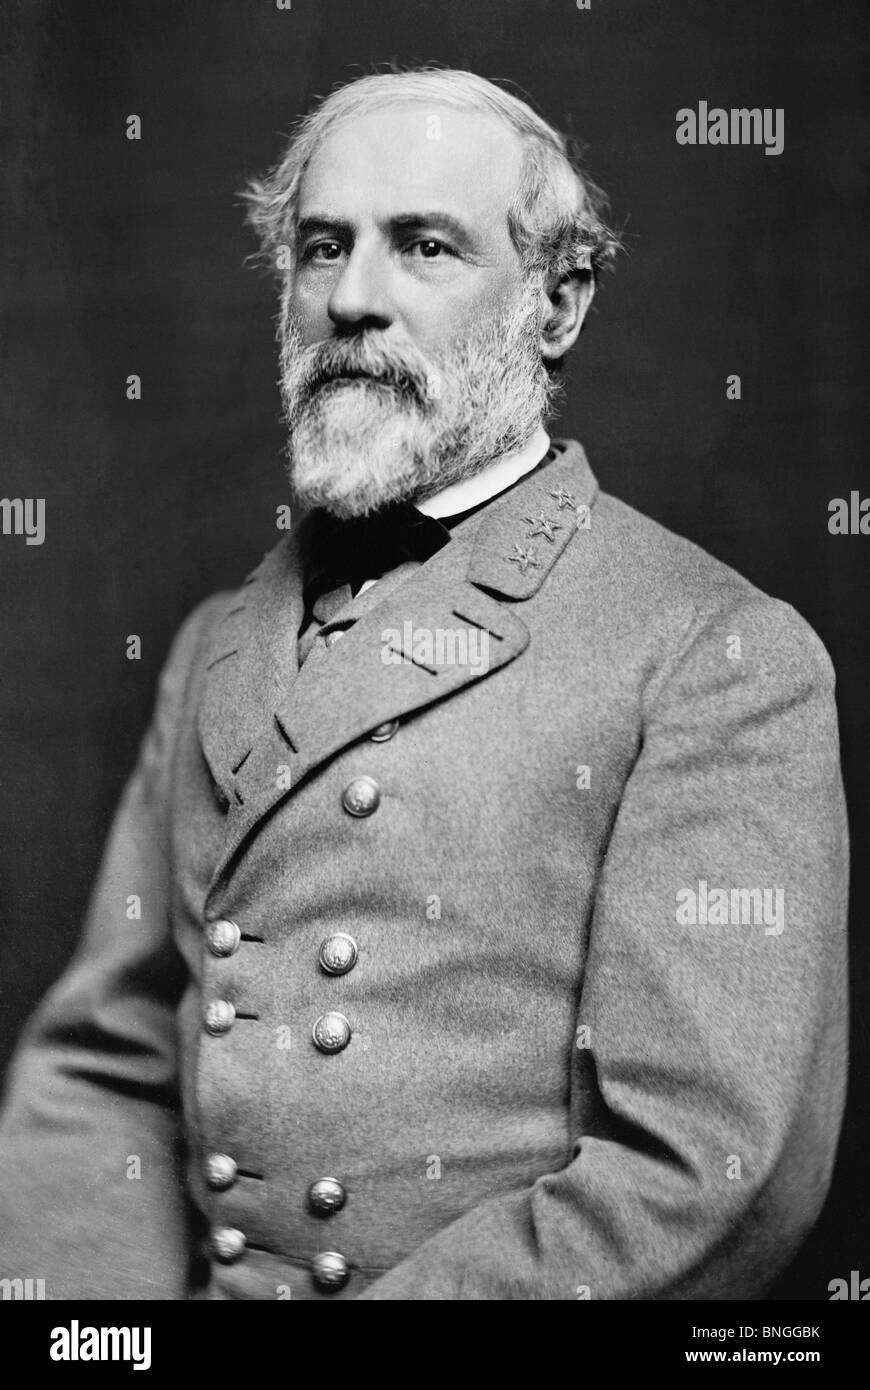 Portrait photo circa 1864 of General Robert E Lee (1807 - 1870) - iconic Confederate commander in the American Civil - Stock Image